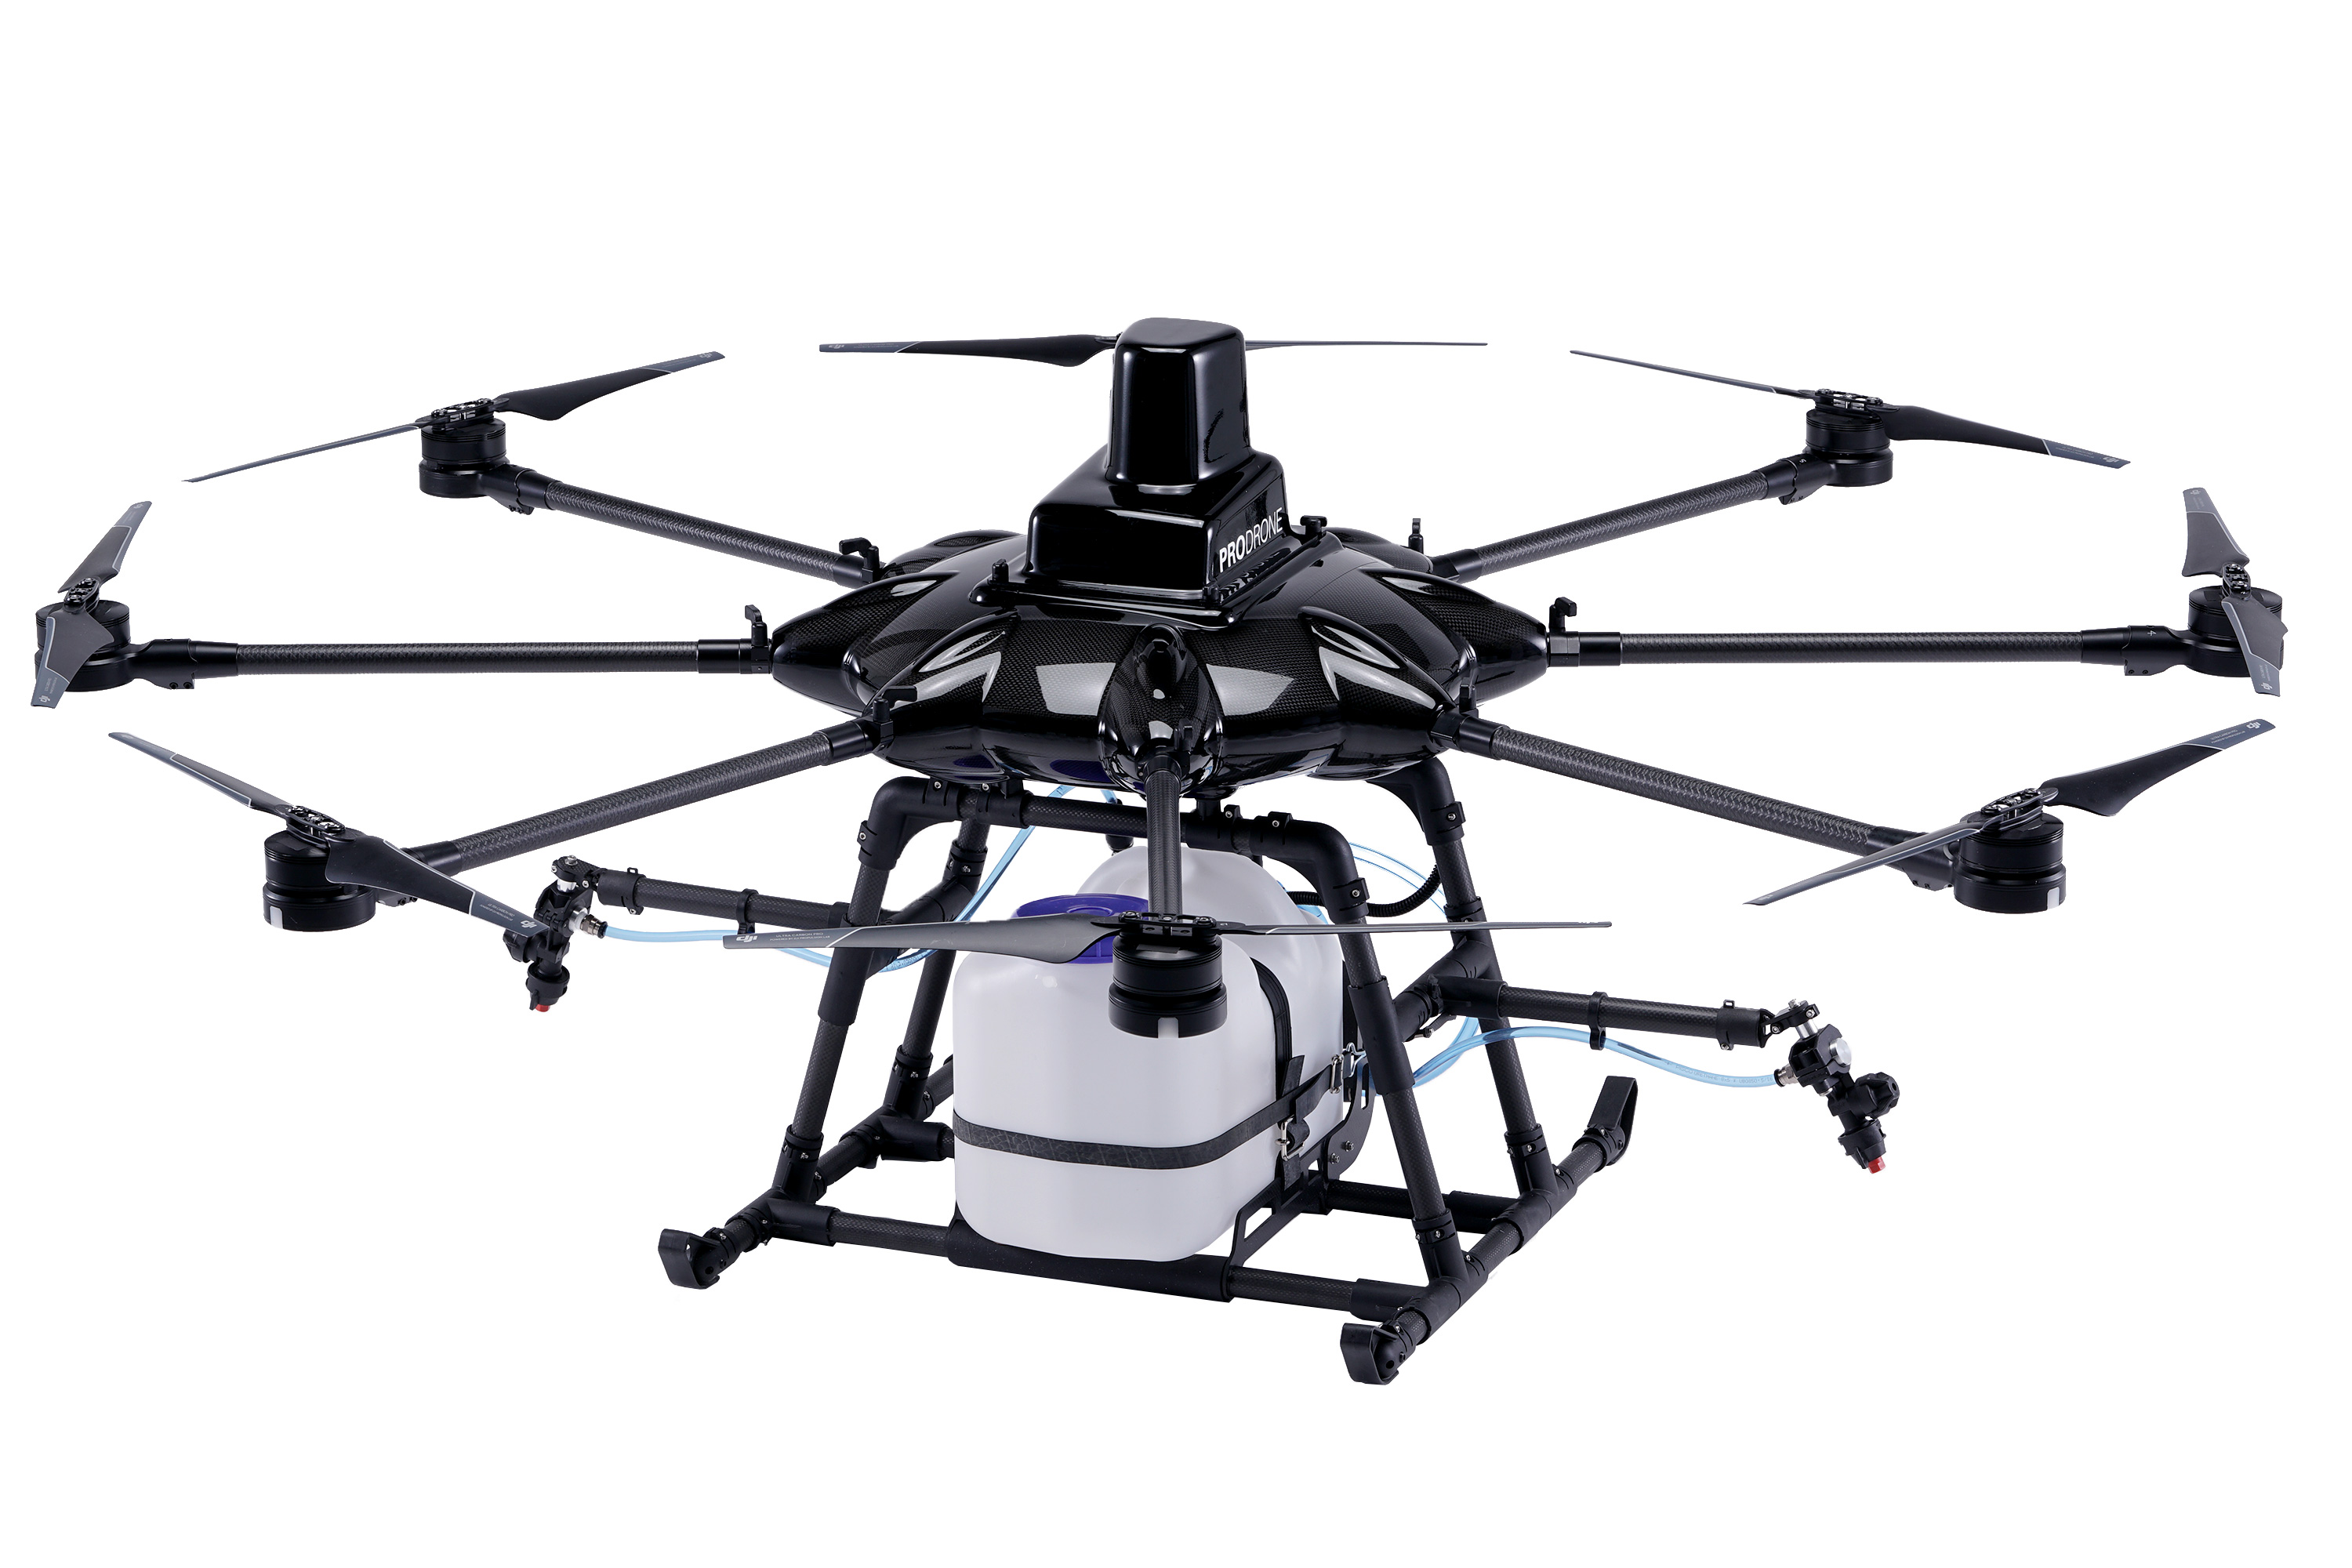 PRODRONE Develop the SkymatiX X-F1 for their business in